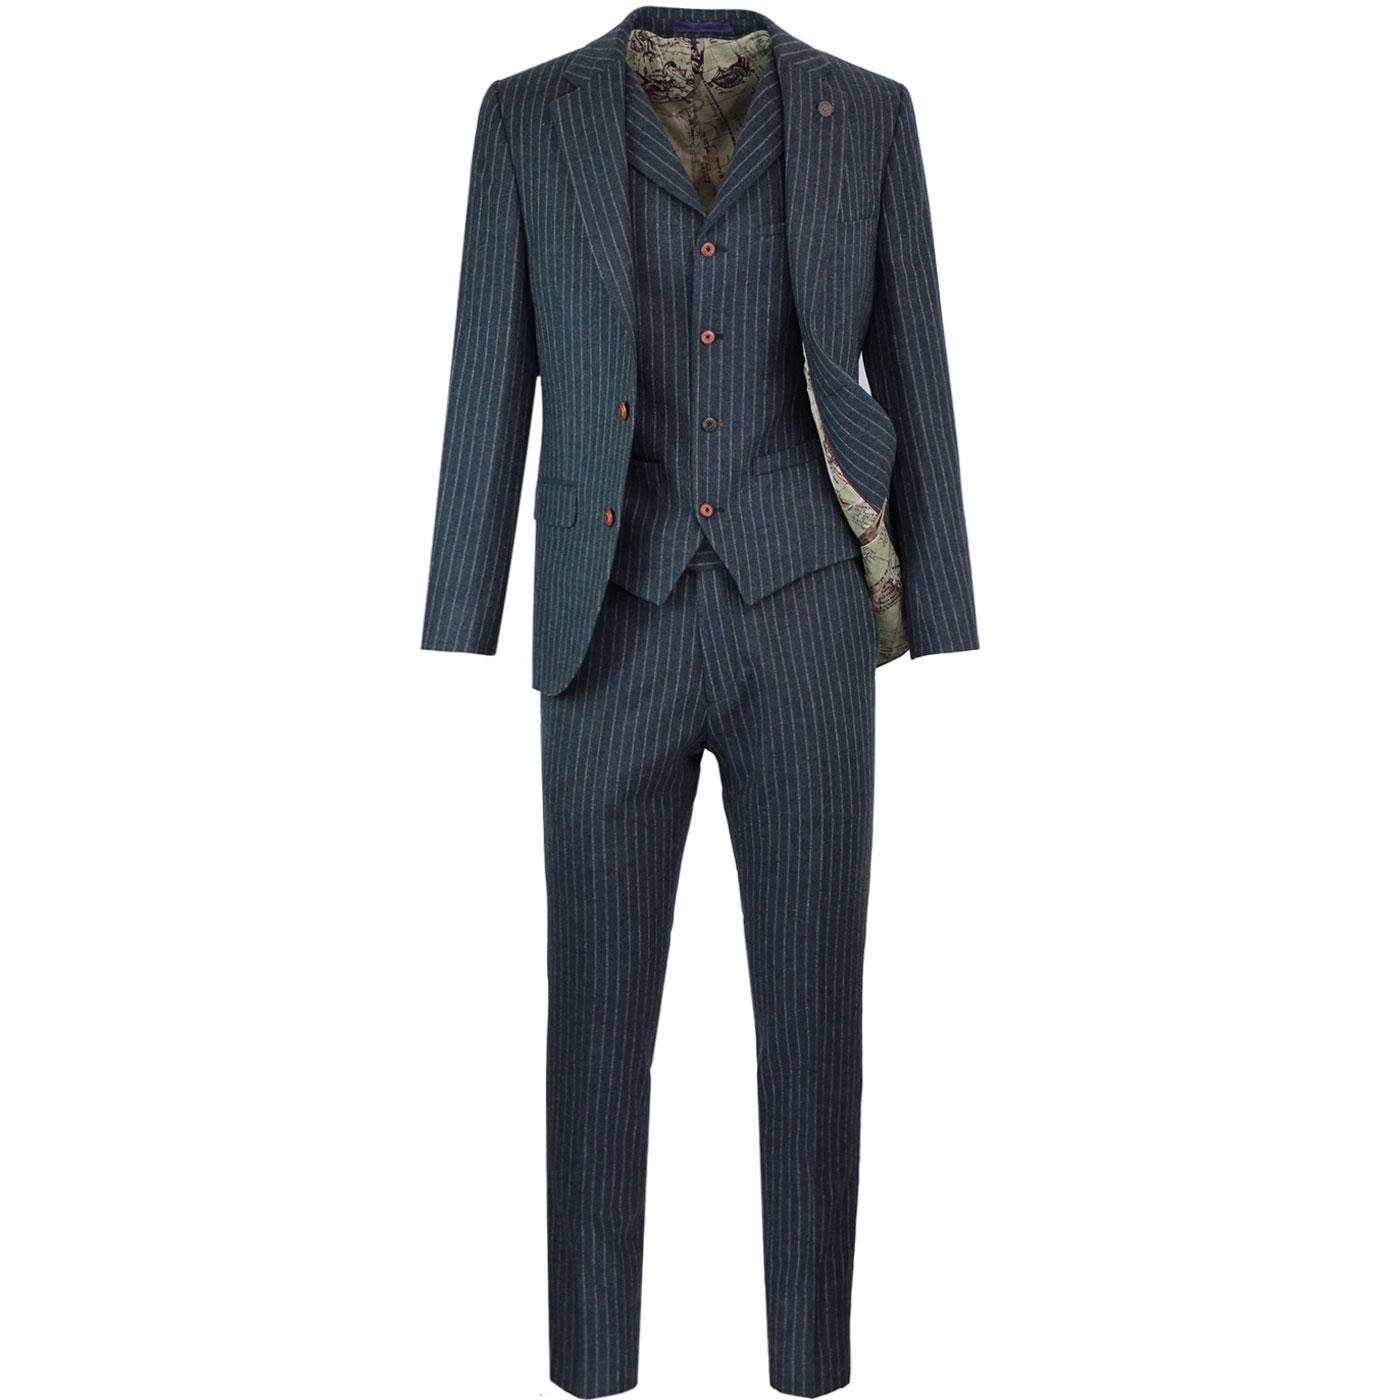 Towergate GIBSON LONDON Retro Mod Pinstripe Suit